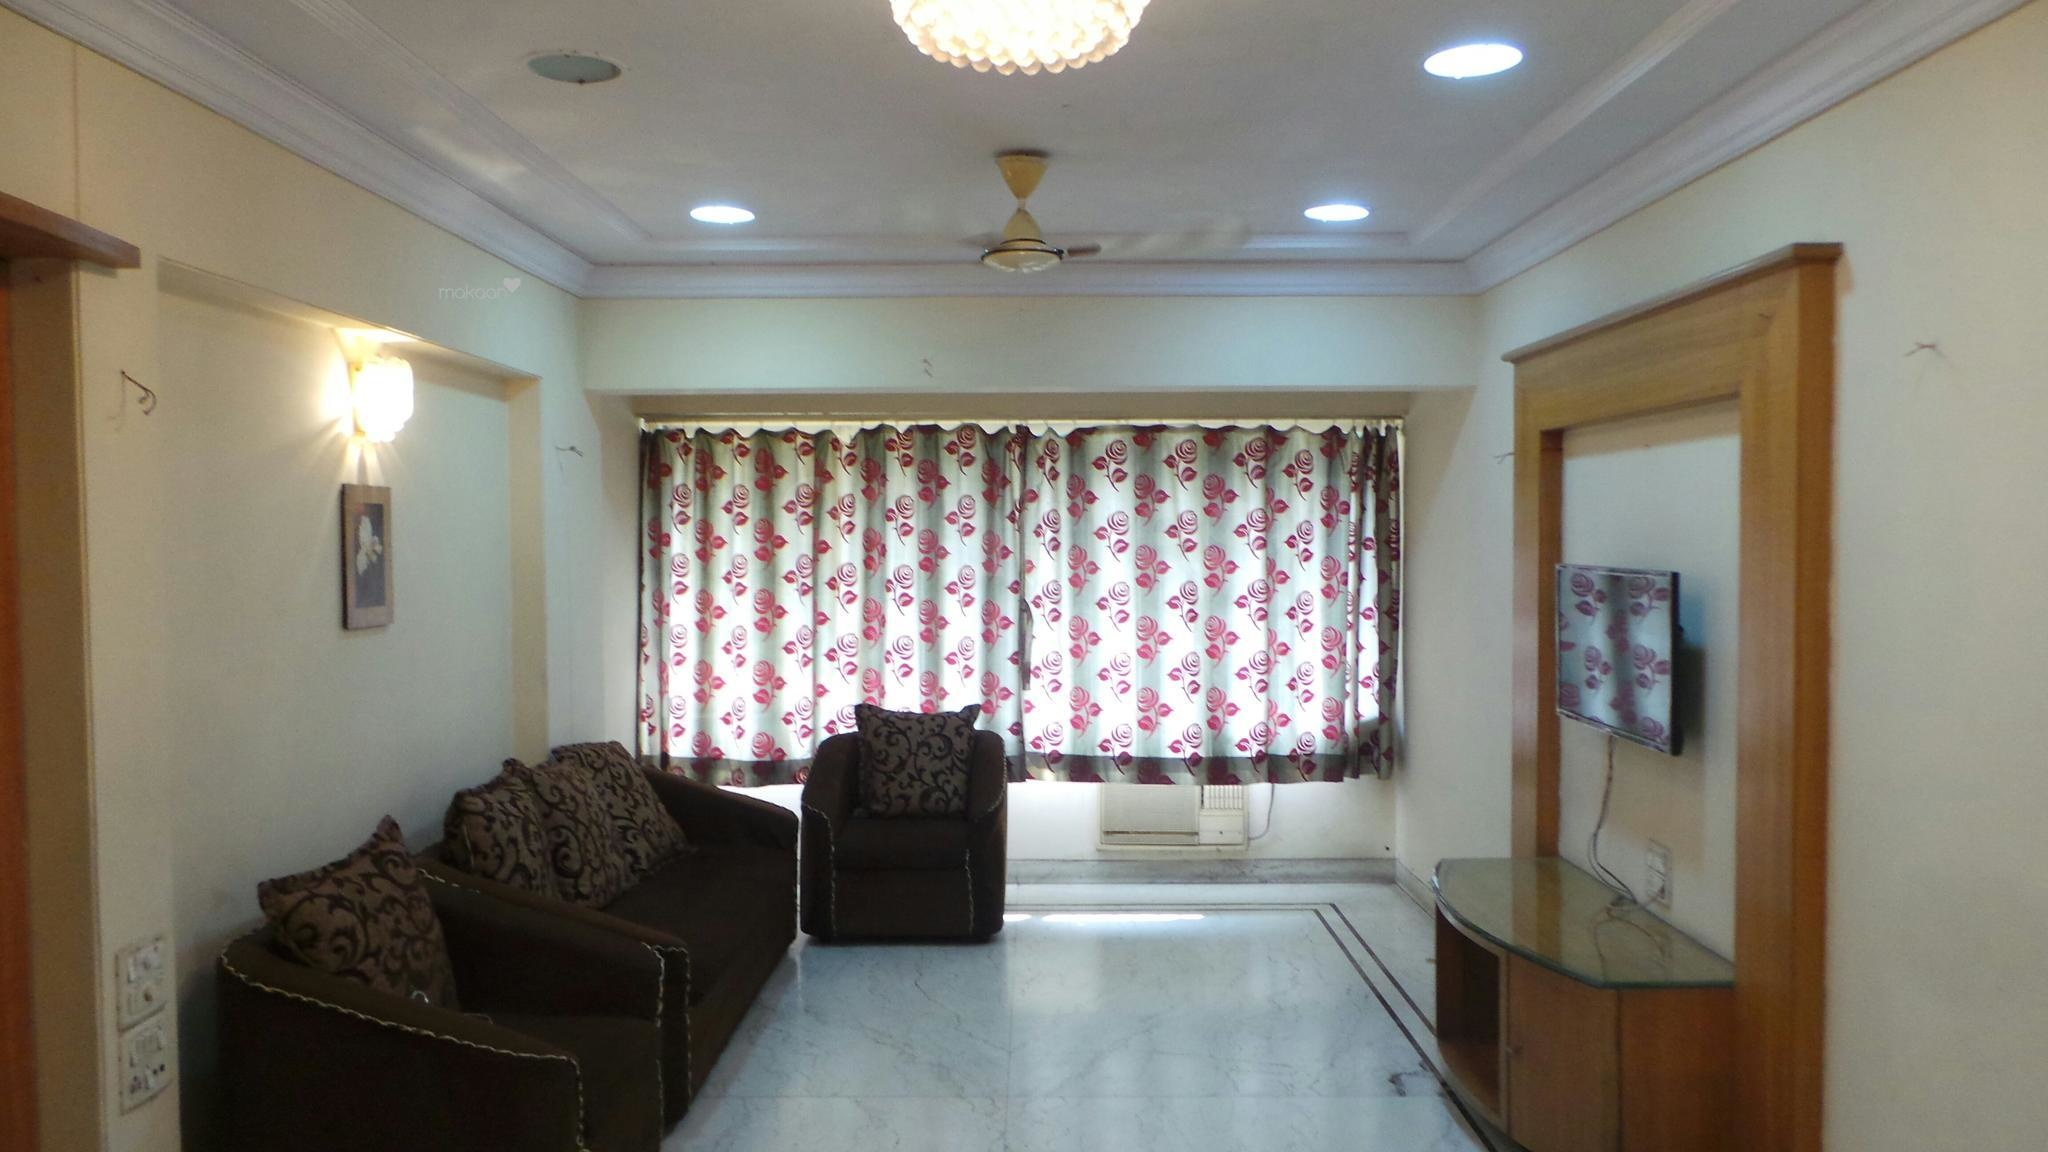 1000 sq ft 2BHK 2BHK+2T (1,000 sq ft) Property By Shree Real Estate In Project, Sector 17 Vashi